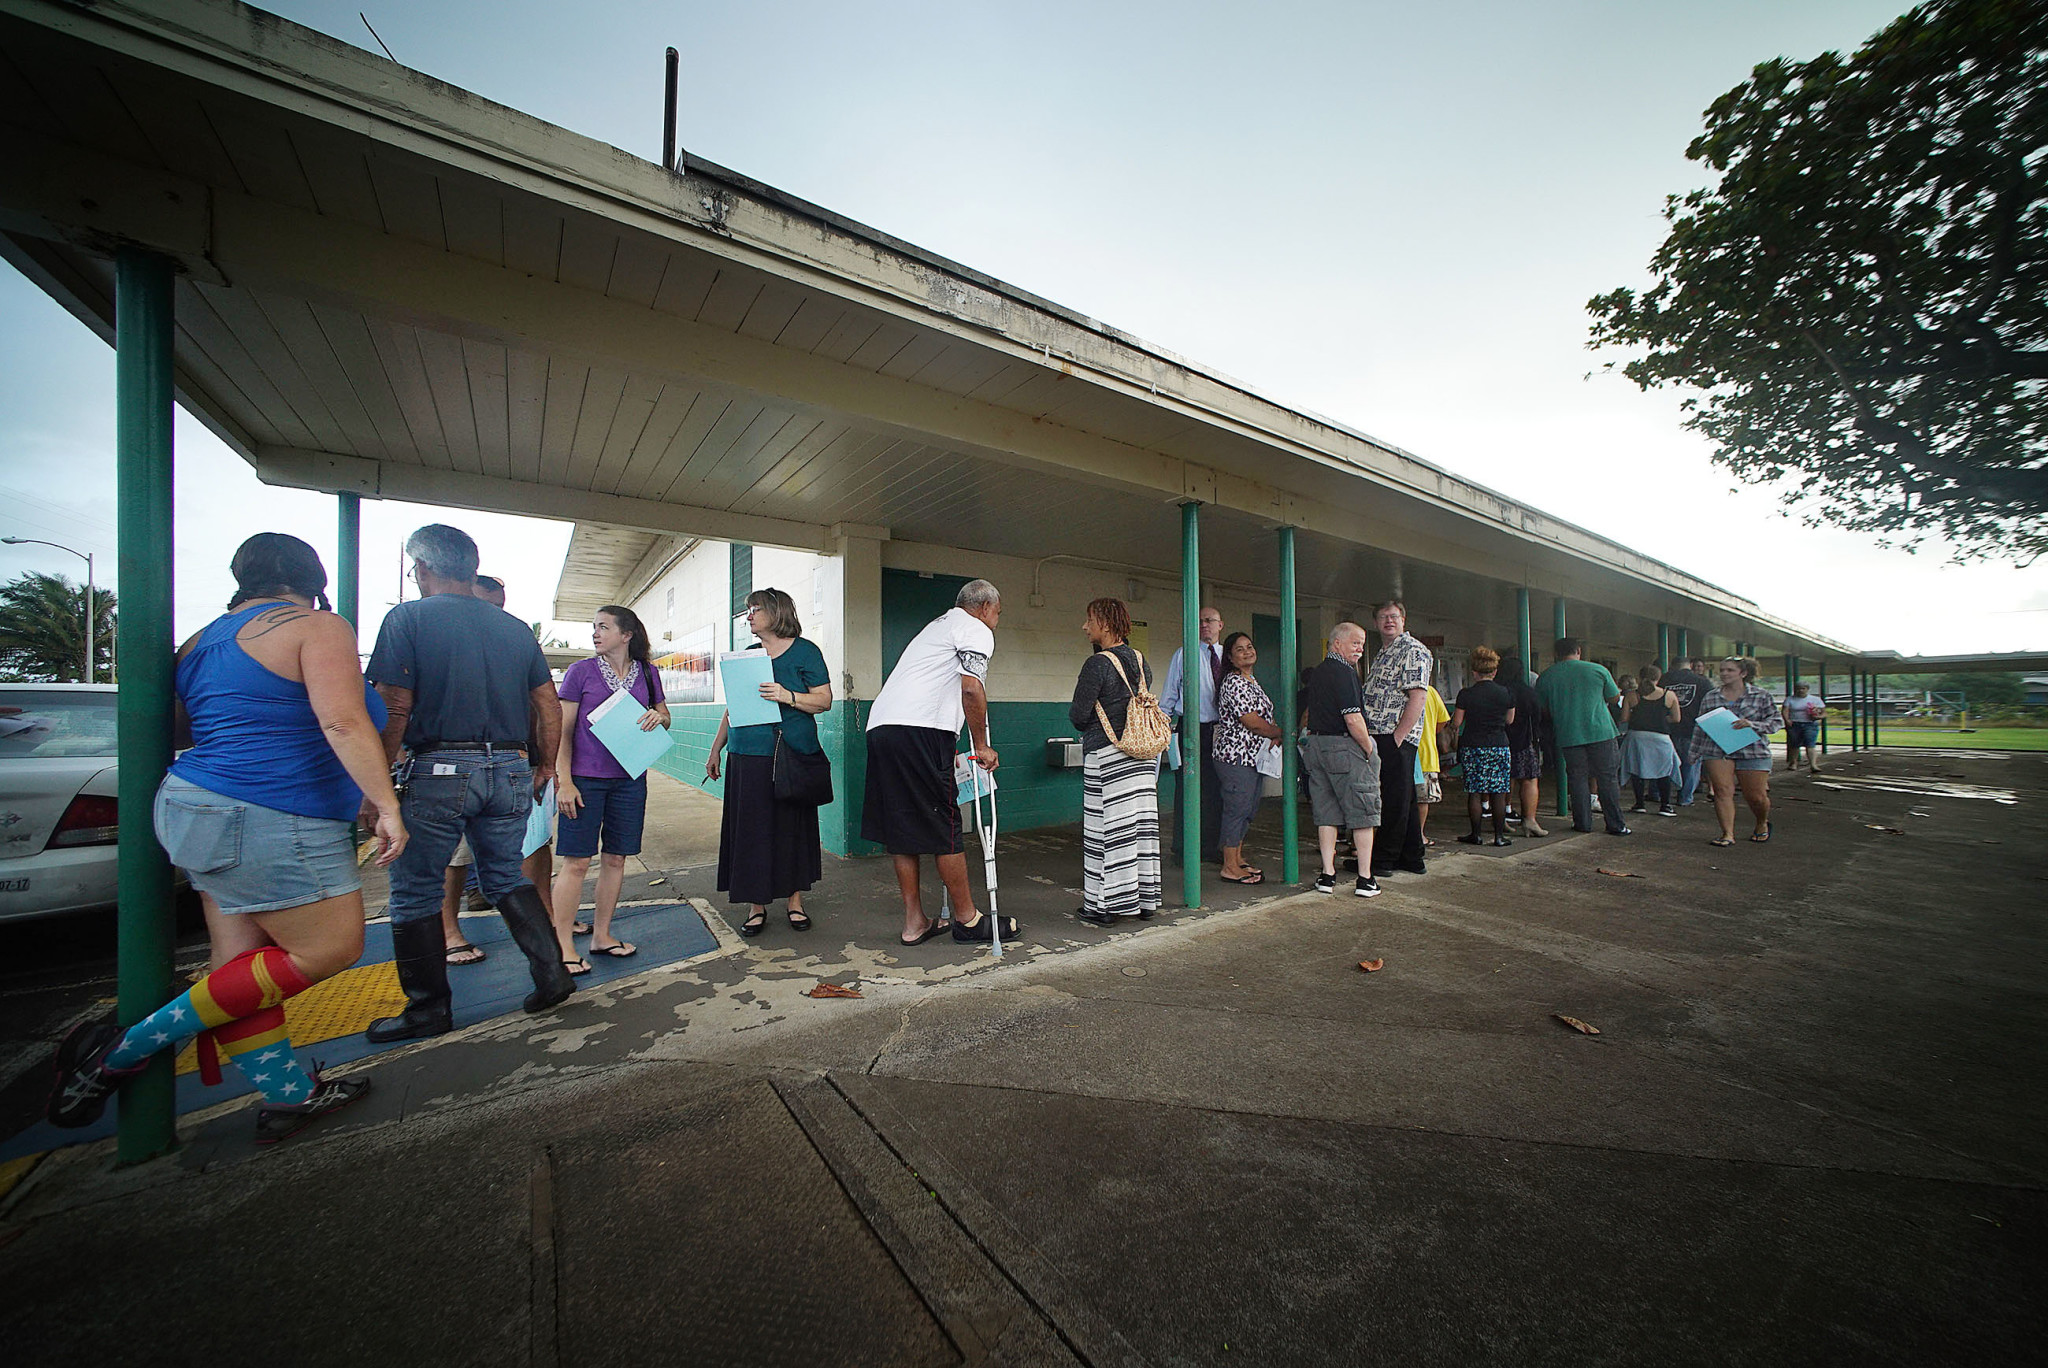 <p>Scores of people queued upto have their paper ballots scanned after voting at Hauula Elementary School. Long lines were common sights at polling places. — Cory Lum/Civil Beat</p>